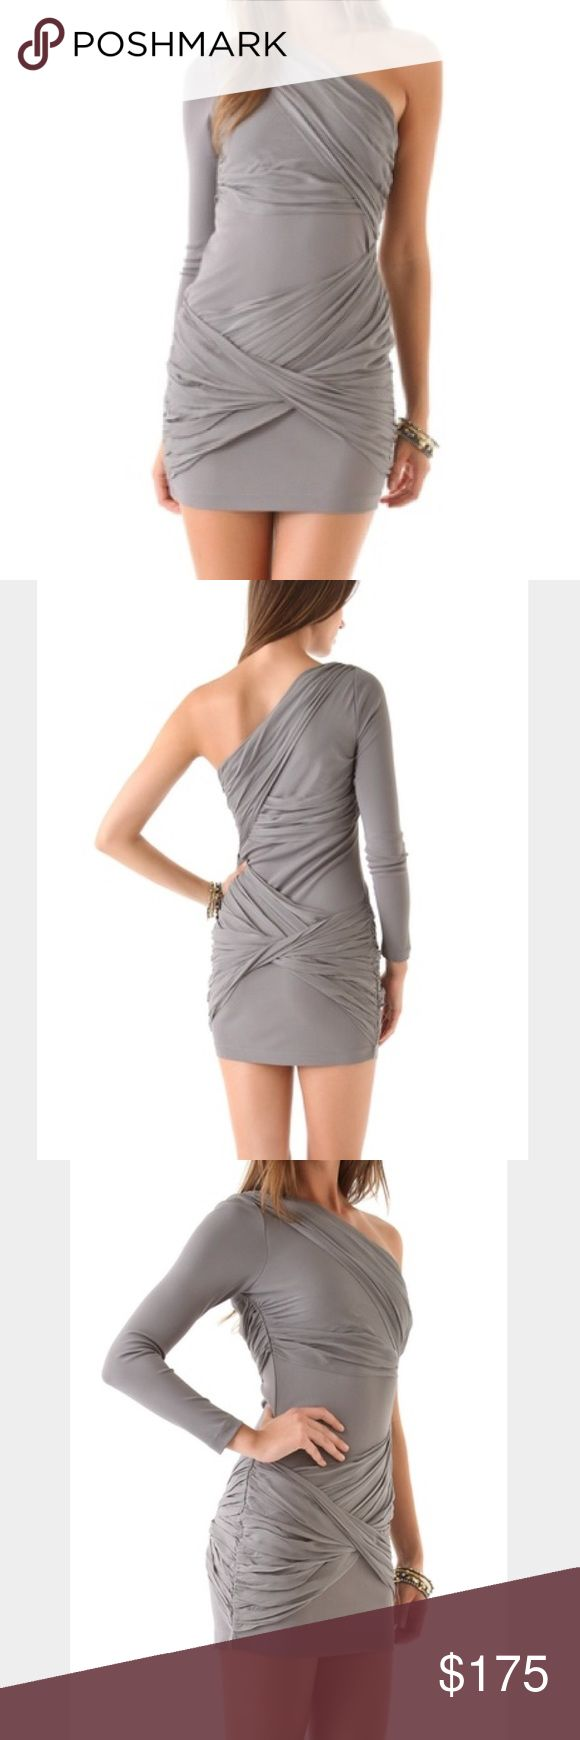 💗sale💗Alice and Olivia, NEW grey mini dress! Alice and Olivia, NEW with tags grey mini dress! Perfect for any occasion and season. I also have this in green strapless. Alice + Olivia Dresses Mini